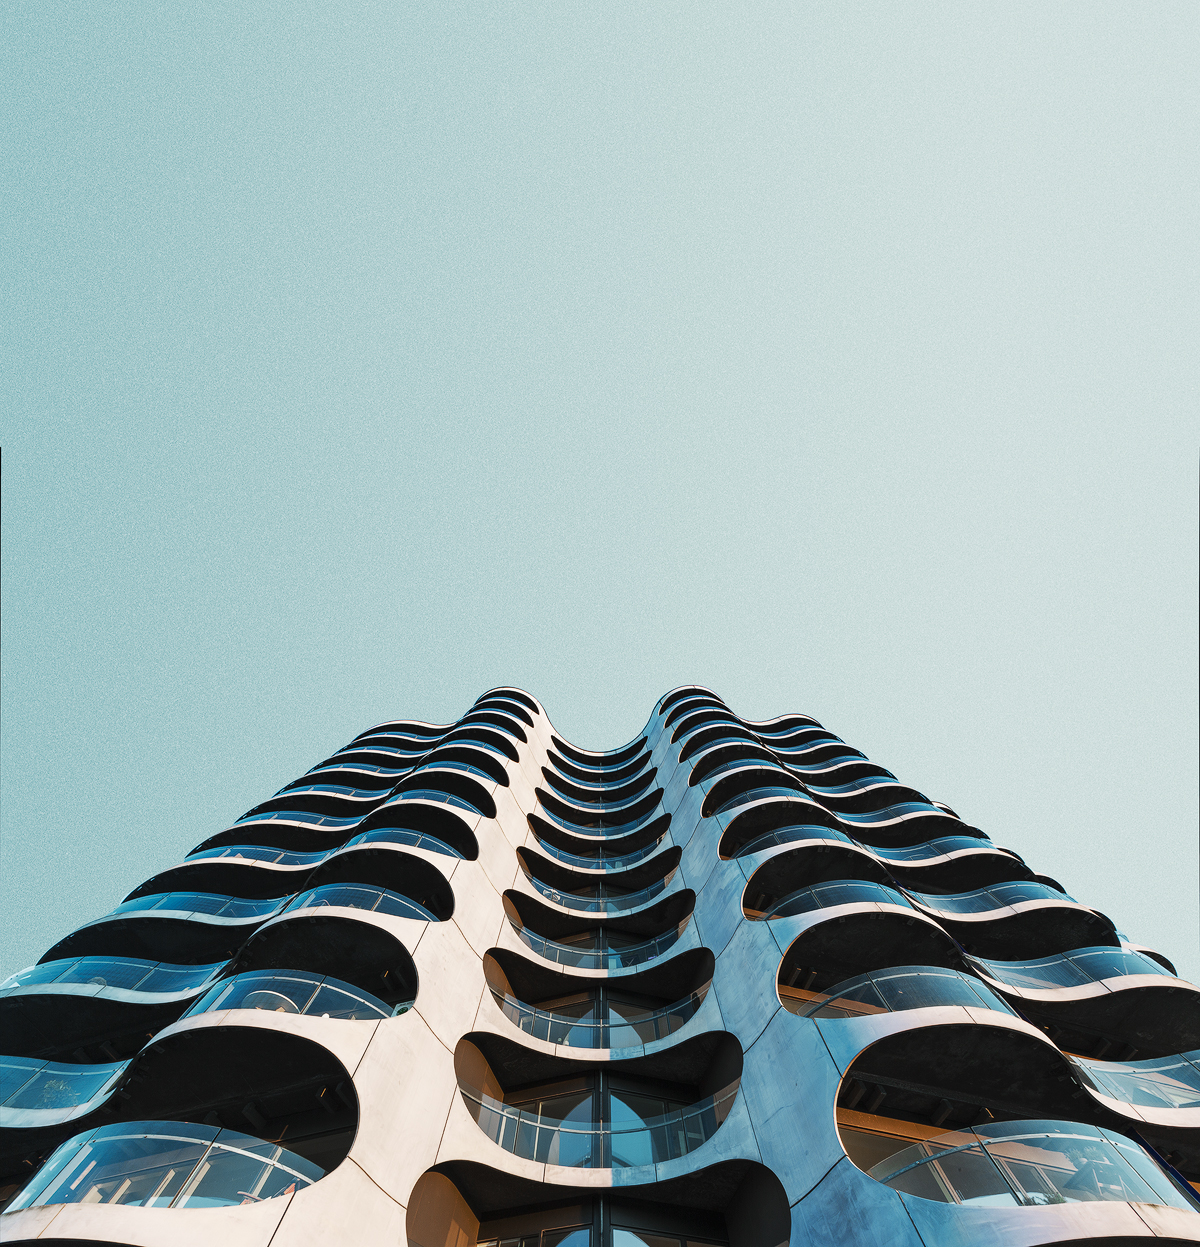 Architecture Photography: ARCHIISERIES II by Calle Artmark